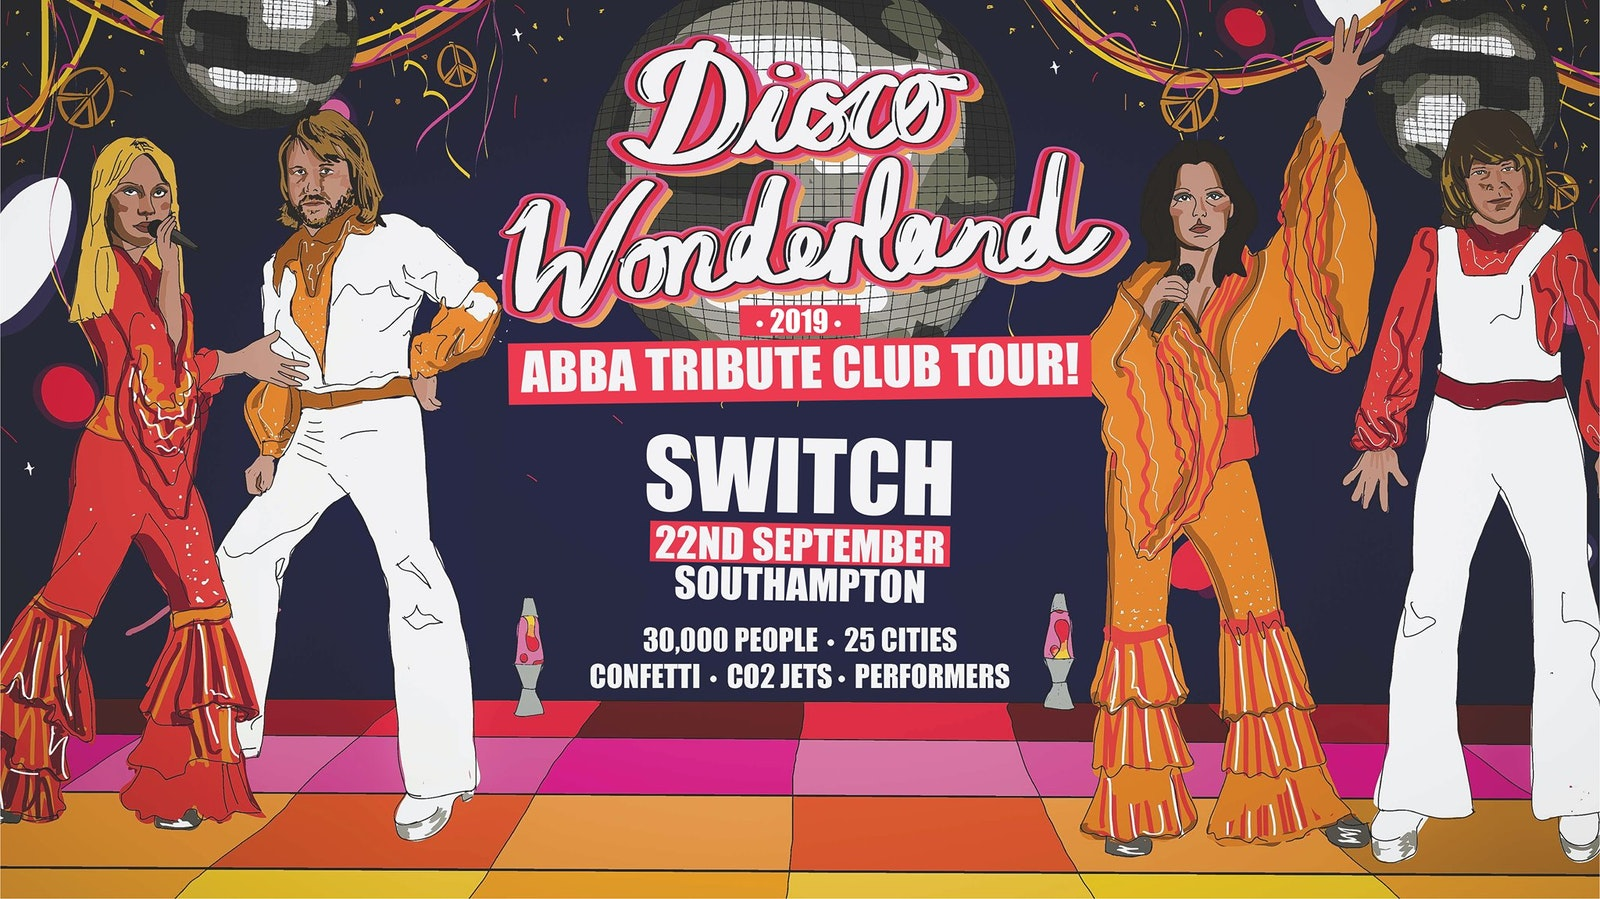 Disco Wonderland: Abba Tribute Club Tour